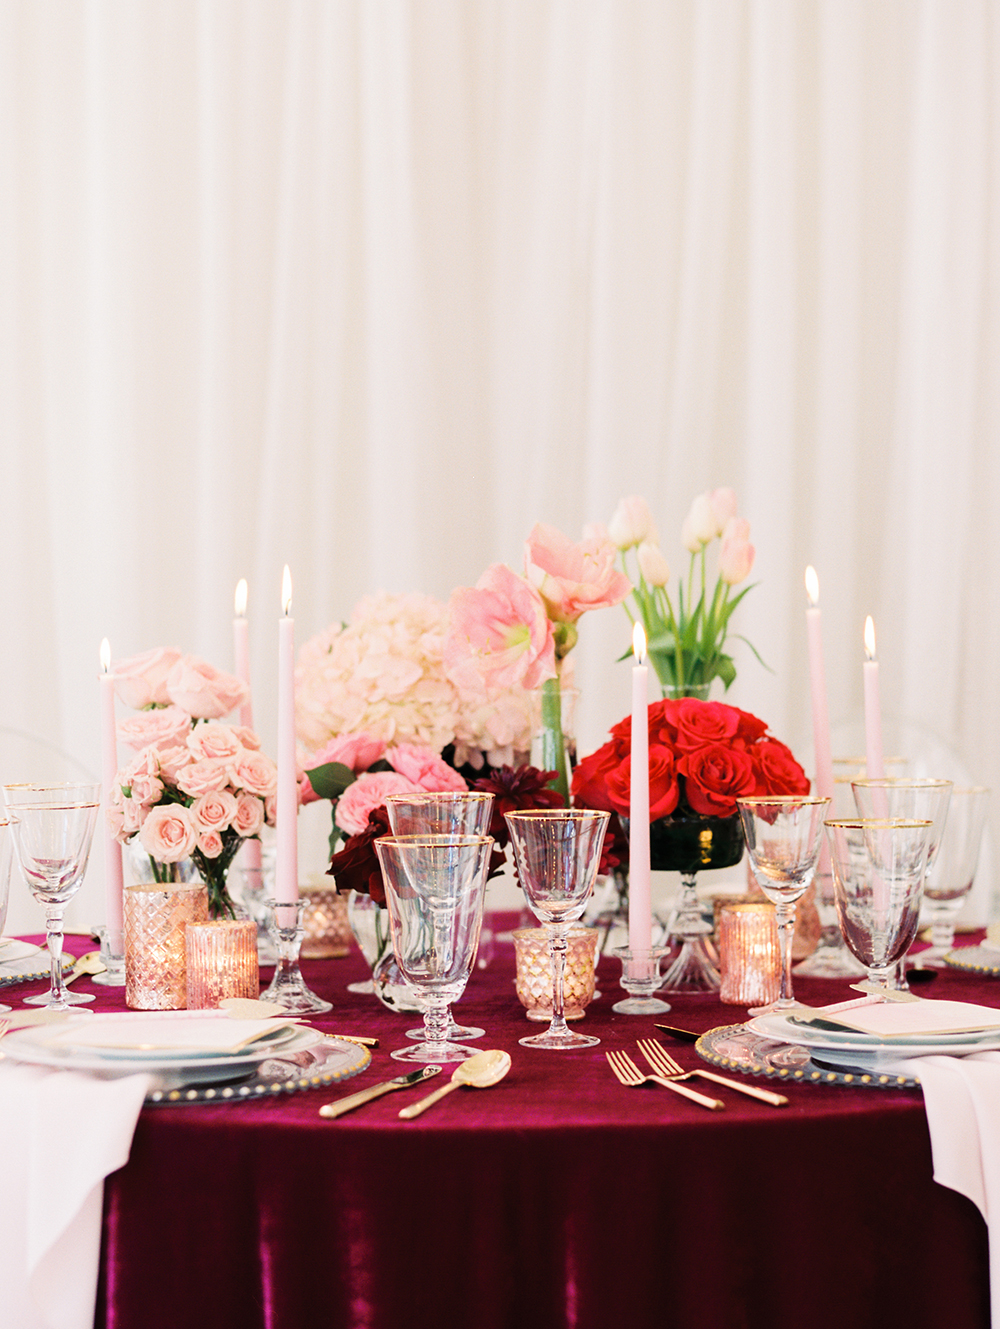 romantic Valentines Day weddings - photo by Erin Stubblefield http://ruffledblog.com/chic-city-valentines-day-wedding-inspiration